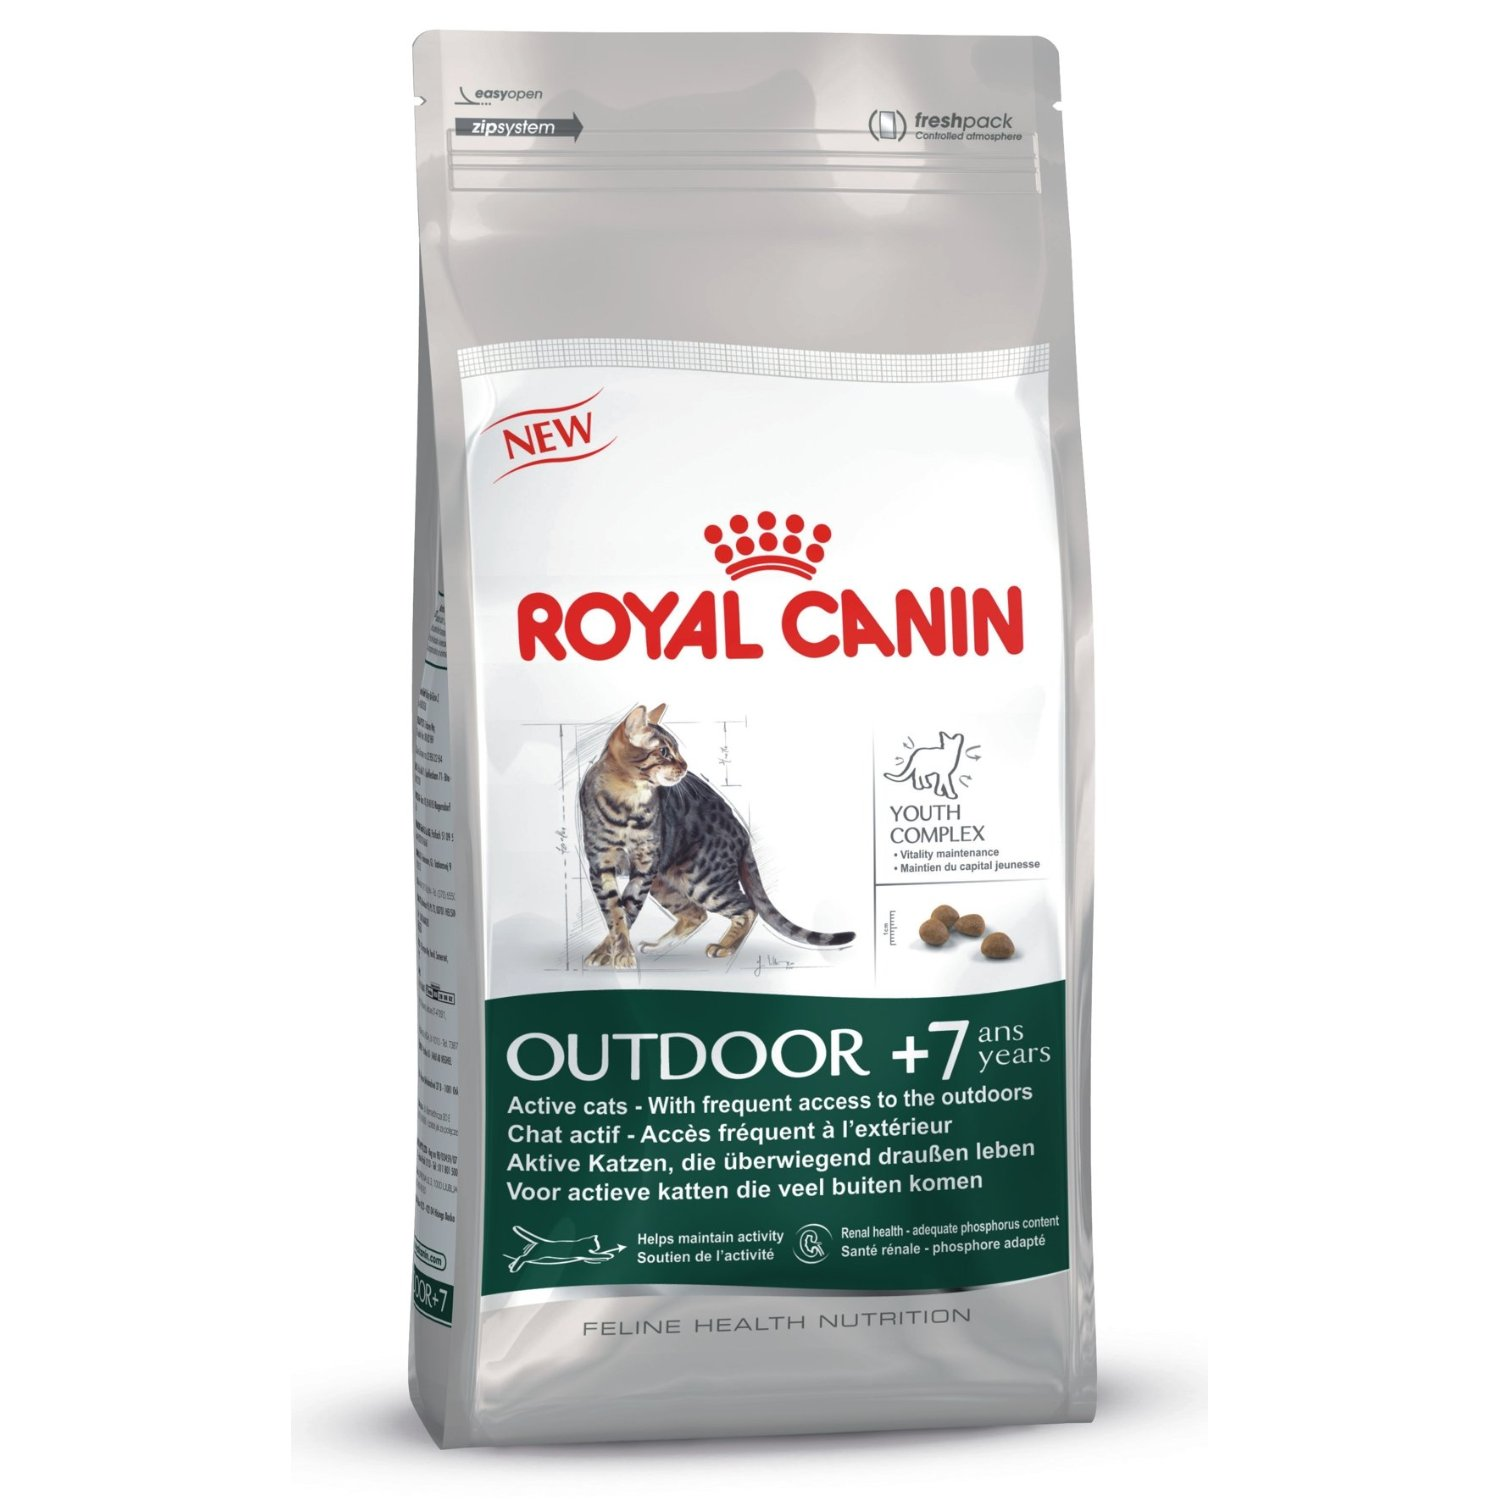 royal canin gastro intestinal katze awesome enterogelan akut paste with royal canin gastro. Black Bedroom Furniture Sets. Home Design Ideas